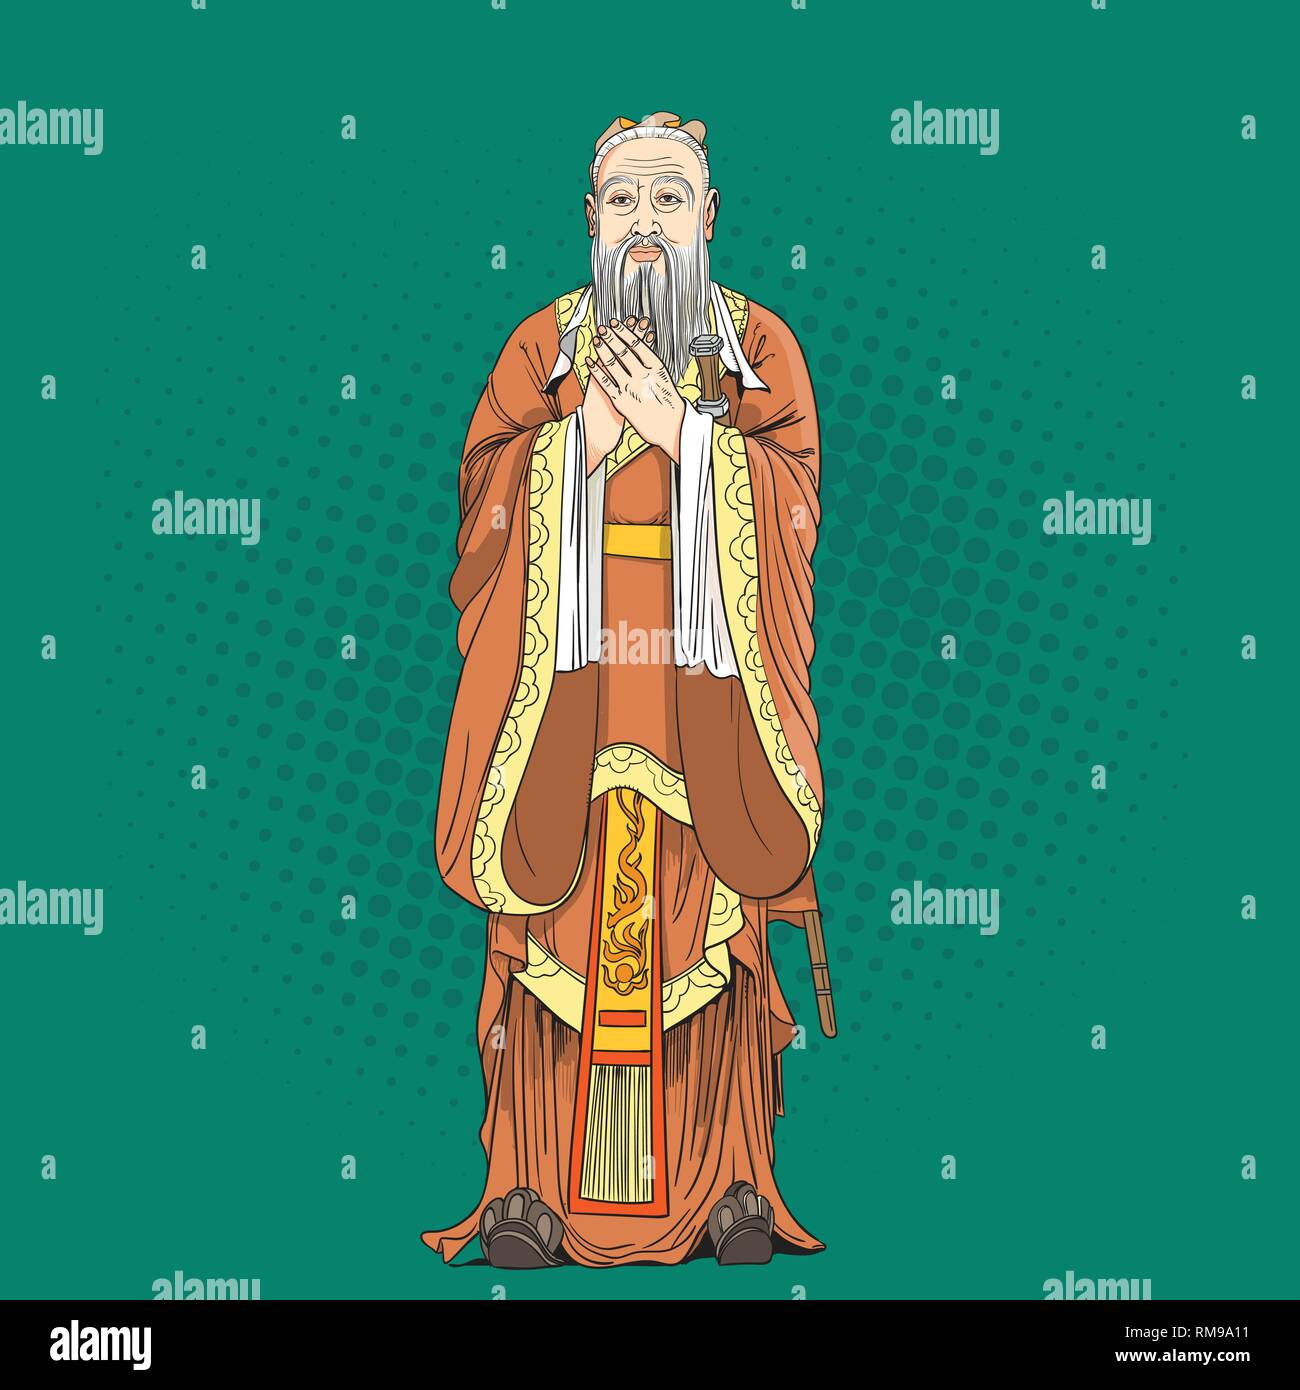 Confucius portrait in line art illustration. He was Chinese philosopher, scholar and teacher of the Spring and Autumn period of Chinese history. - Stock Vector